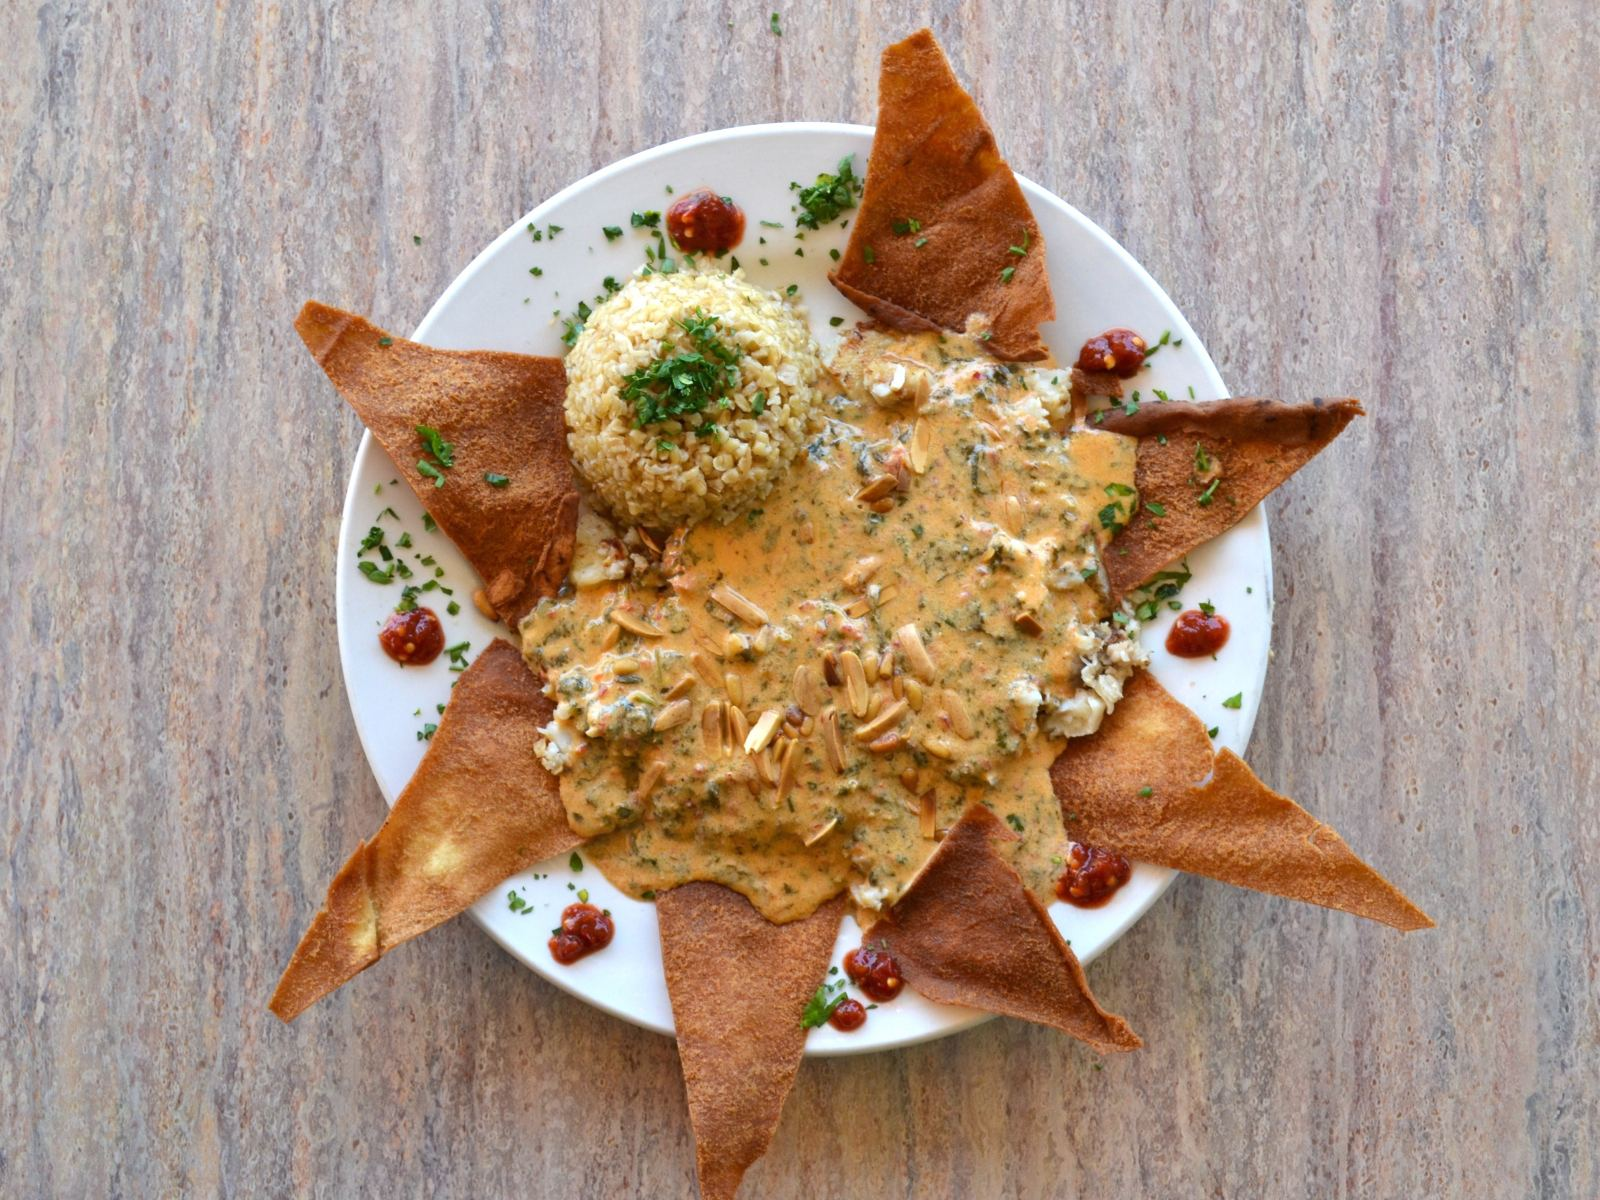 Main image for guide titled The Top 5 Dishes in Tarzana